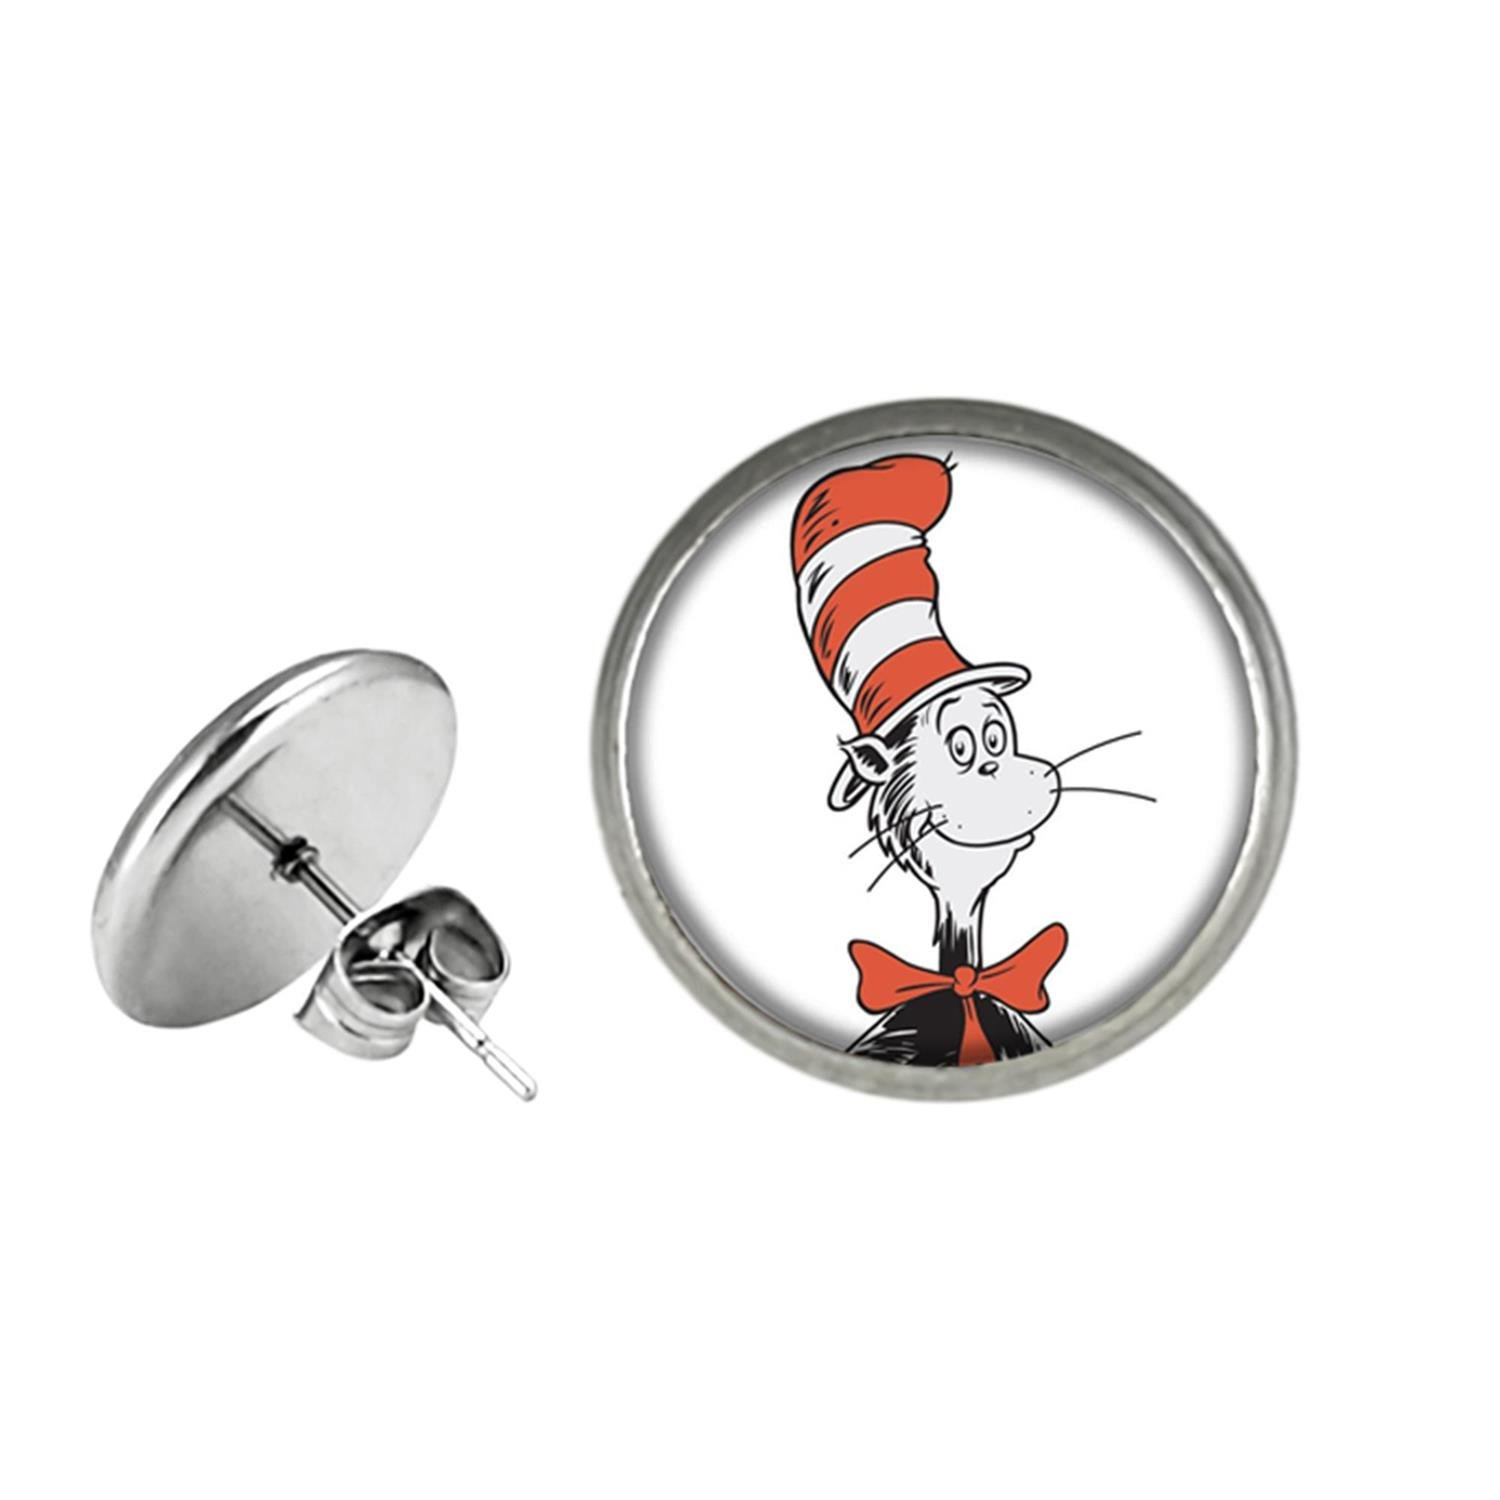 Dr Seuss Post Stud Earrings TV Movies Classic Cartoons Theme Thing 1 an 2 Lorax Cat in the Hat Jewelry